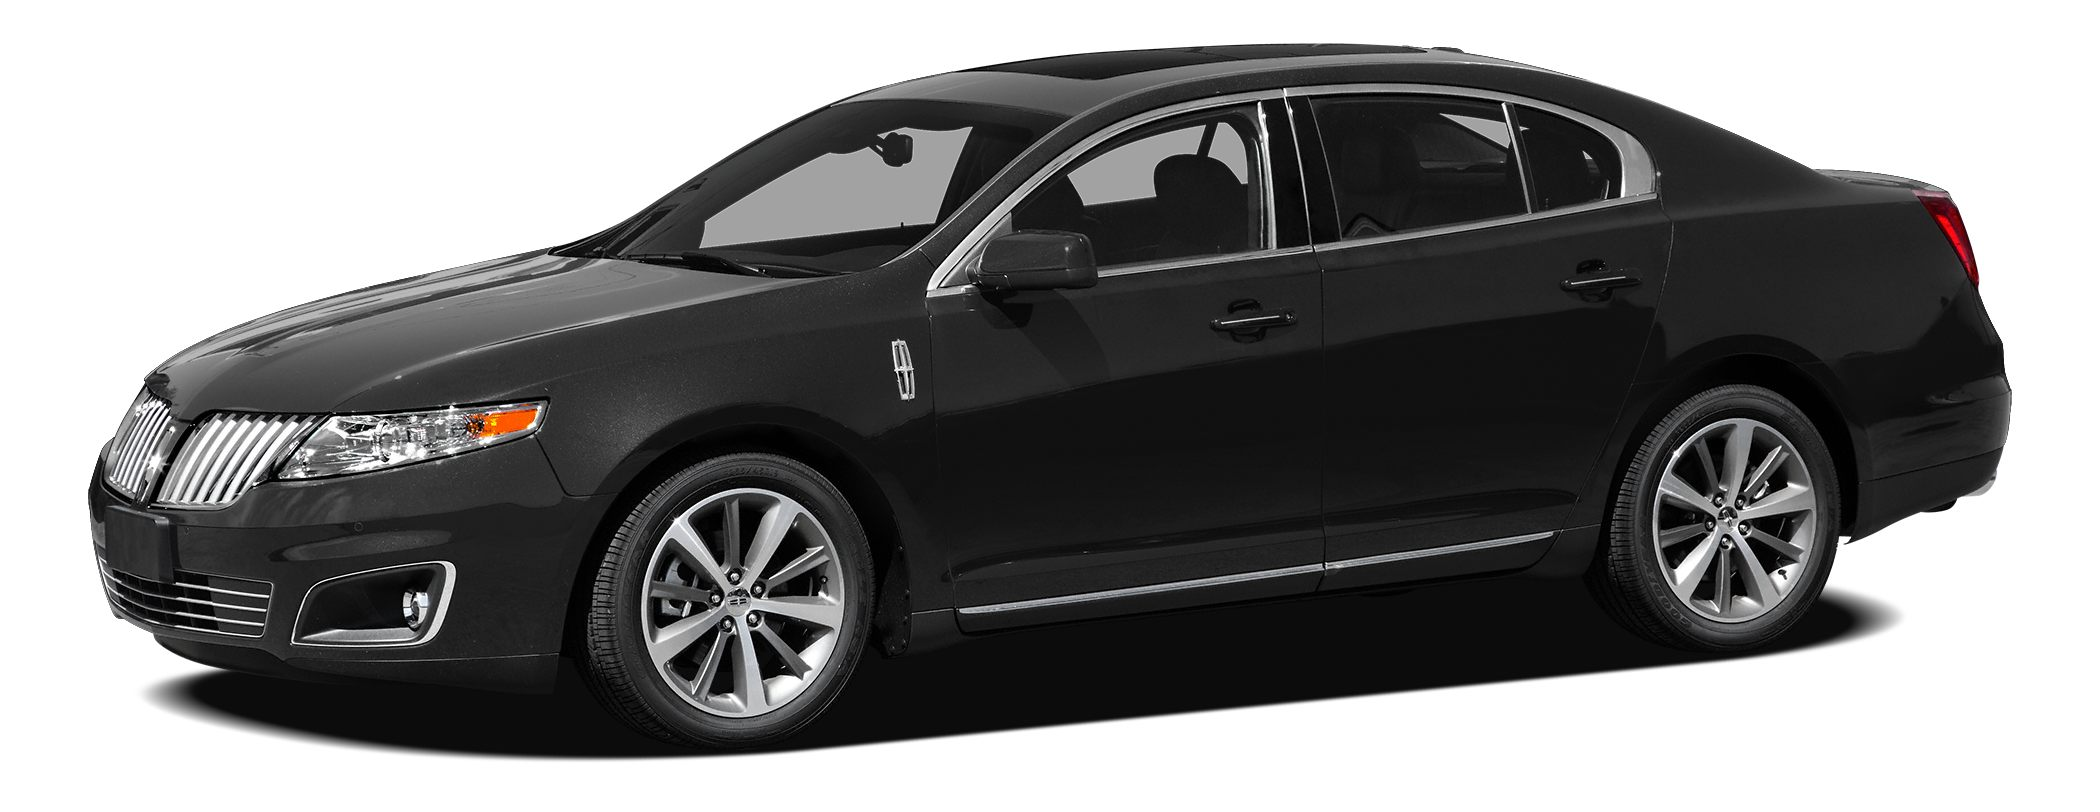 2011 Lincoln MKS EcoBoost LINCOLN CERTIFIED This 2011 Lincoln MKS 35L ECOBOOST V6 is Absolutely